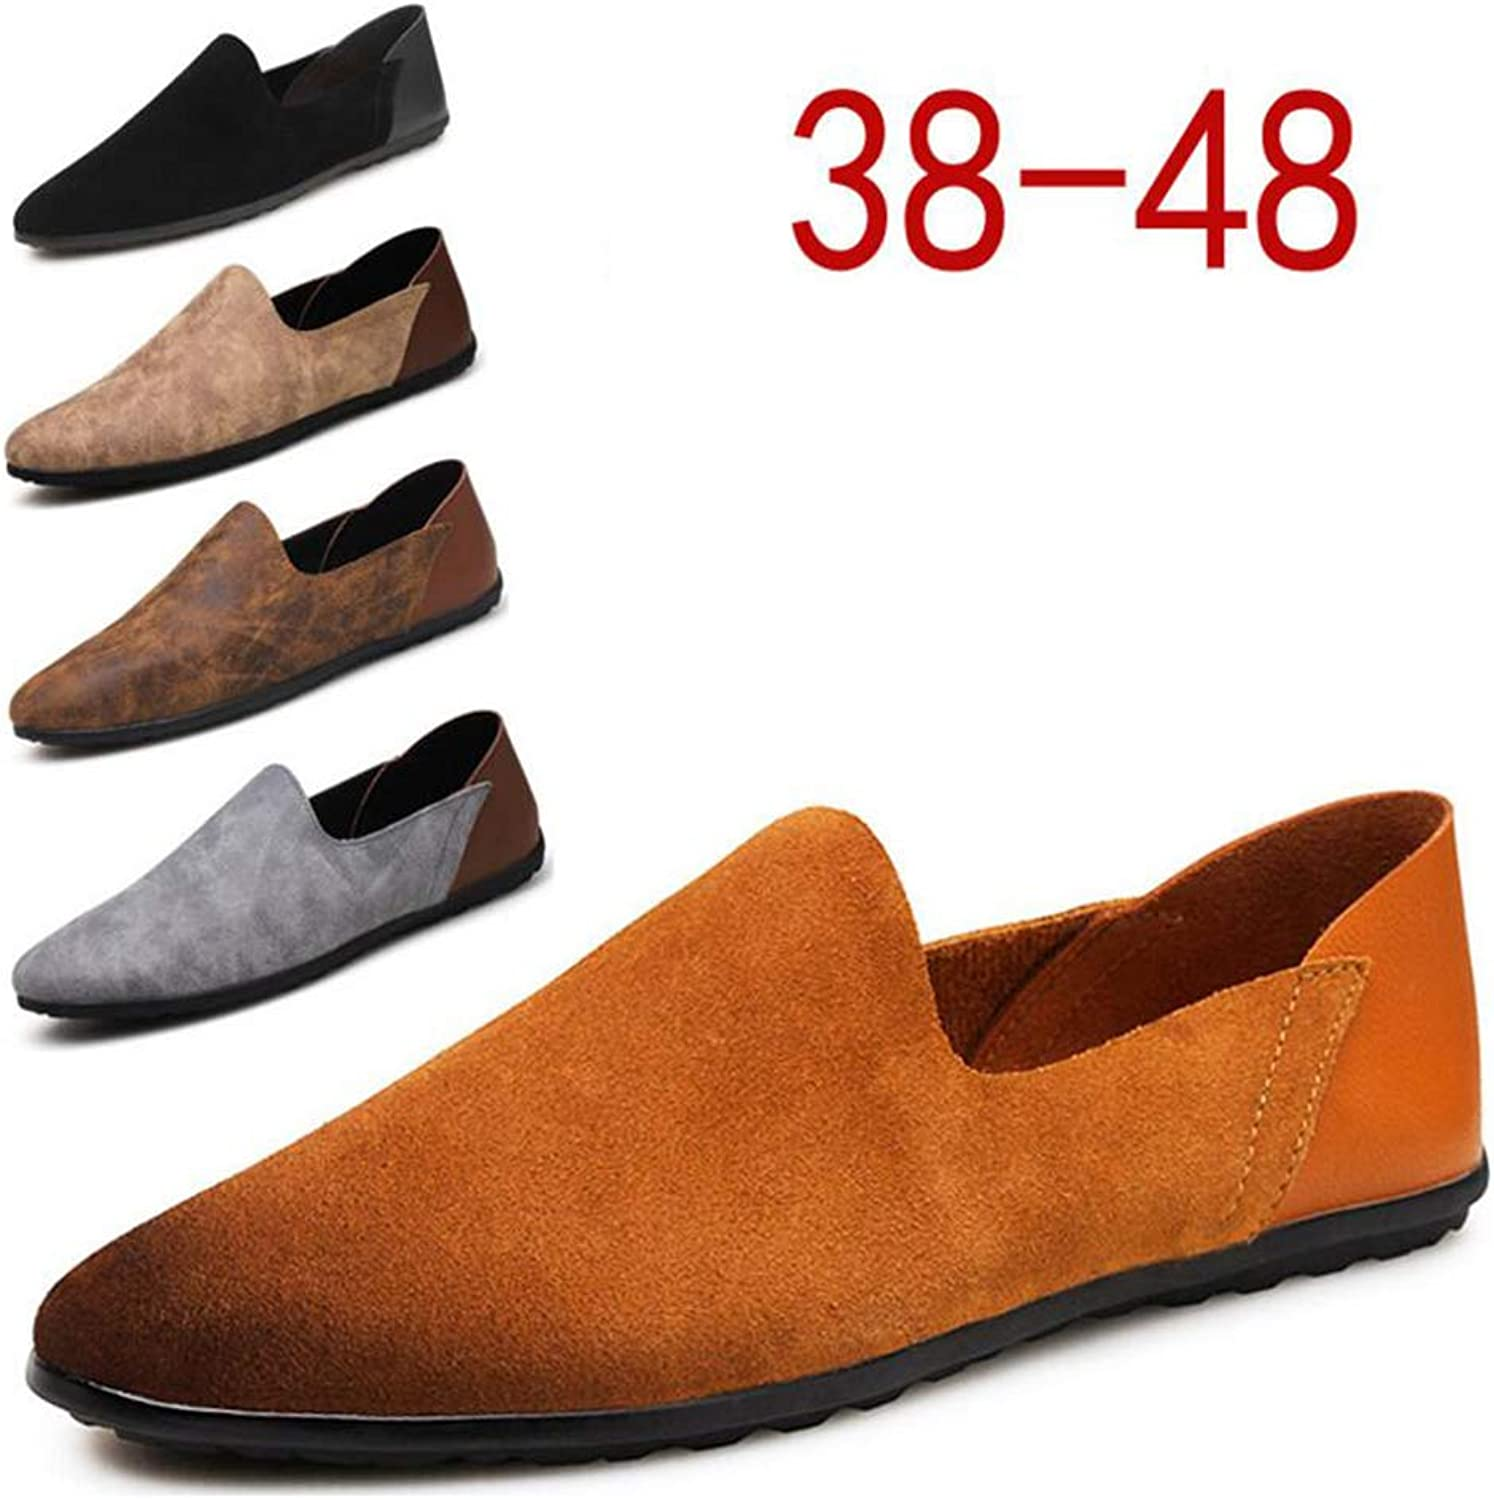 Y-H Men's Casual shoes,Loafers & Slip-Ons Lazy shoes, Light Soles Comfort Driving shoes Walking Gym shoes Trekking,b,39